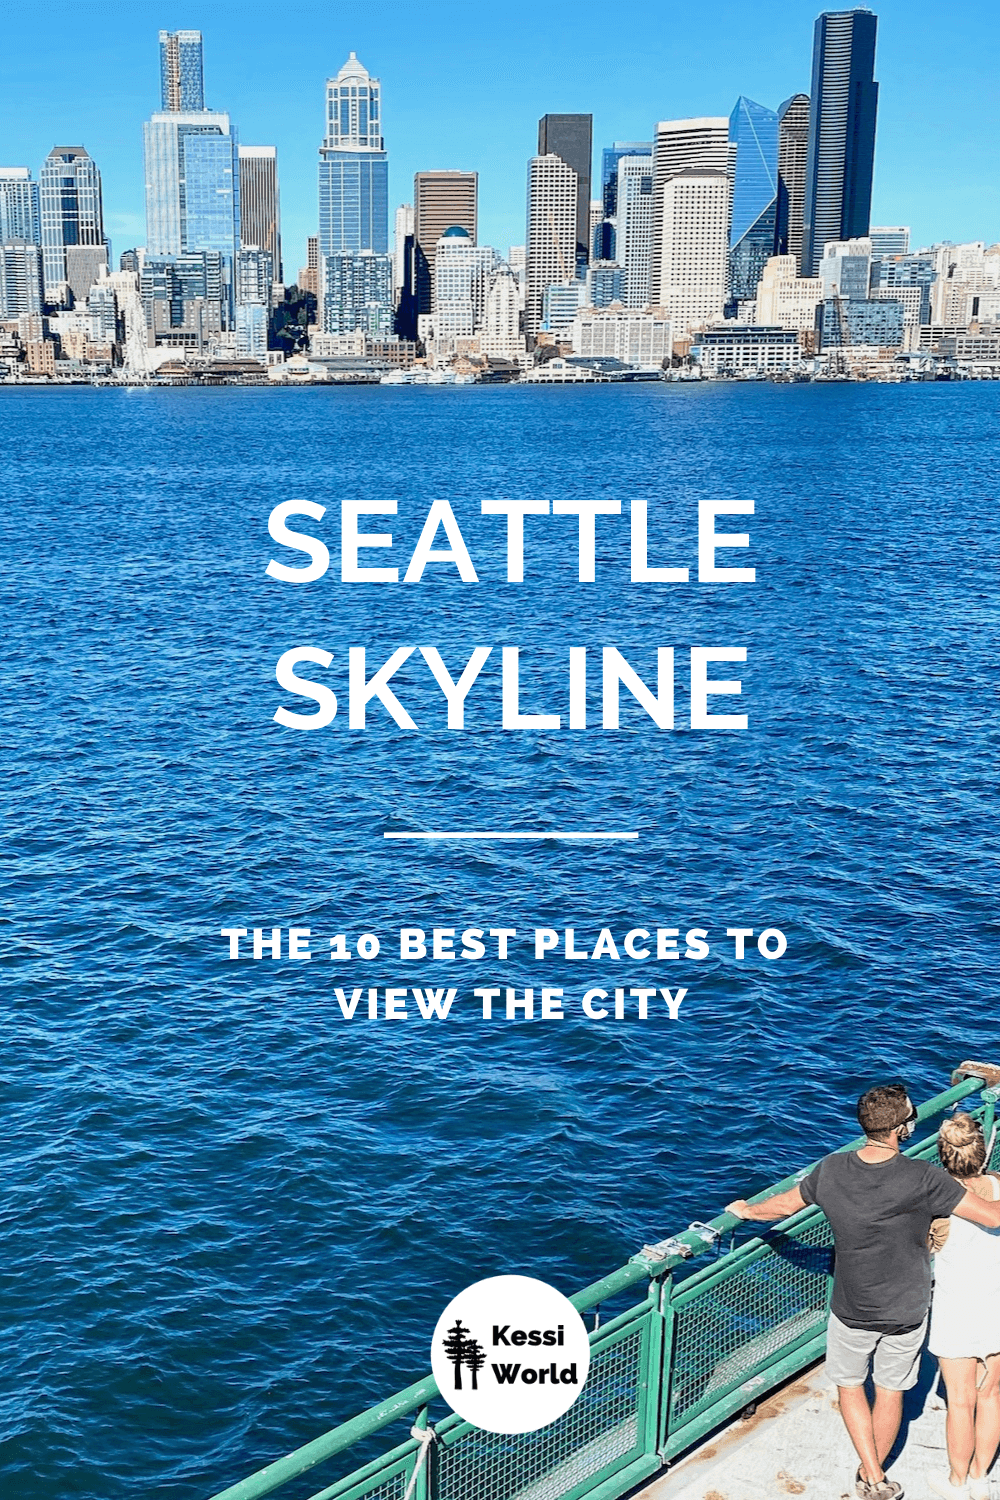 This Pinterest tile offers a sweeping view of the downtown of Seattle as viewed from the water aboard a Washington State Ferry. The green railing of the ferry boat has a male and female couple standing and looking out over the light blue Puget Sound water. The sky is light blue and a few prominent buildings such as the Columbia Center.